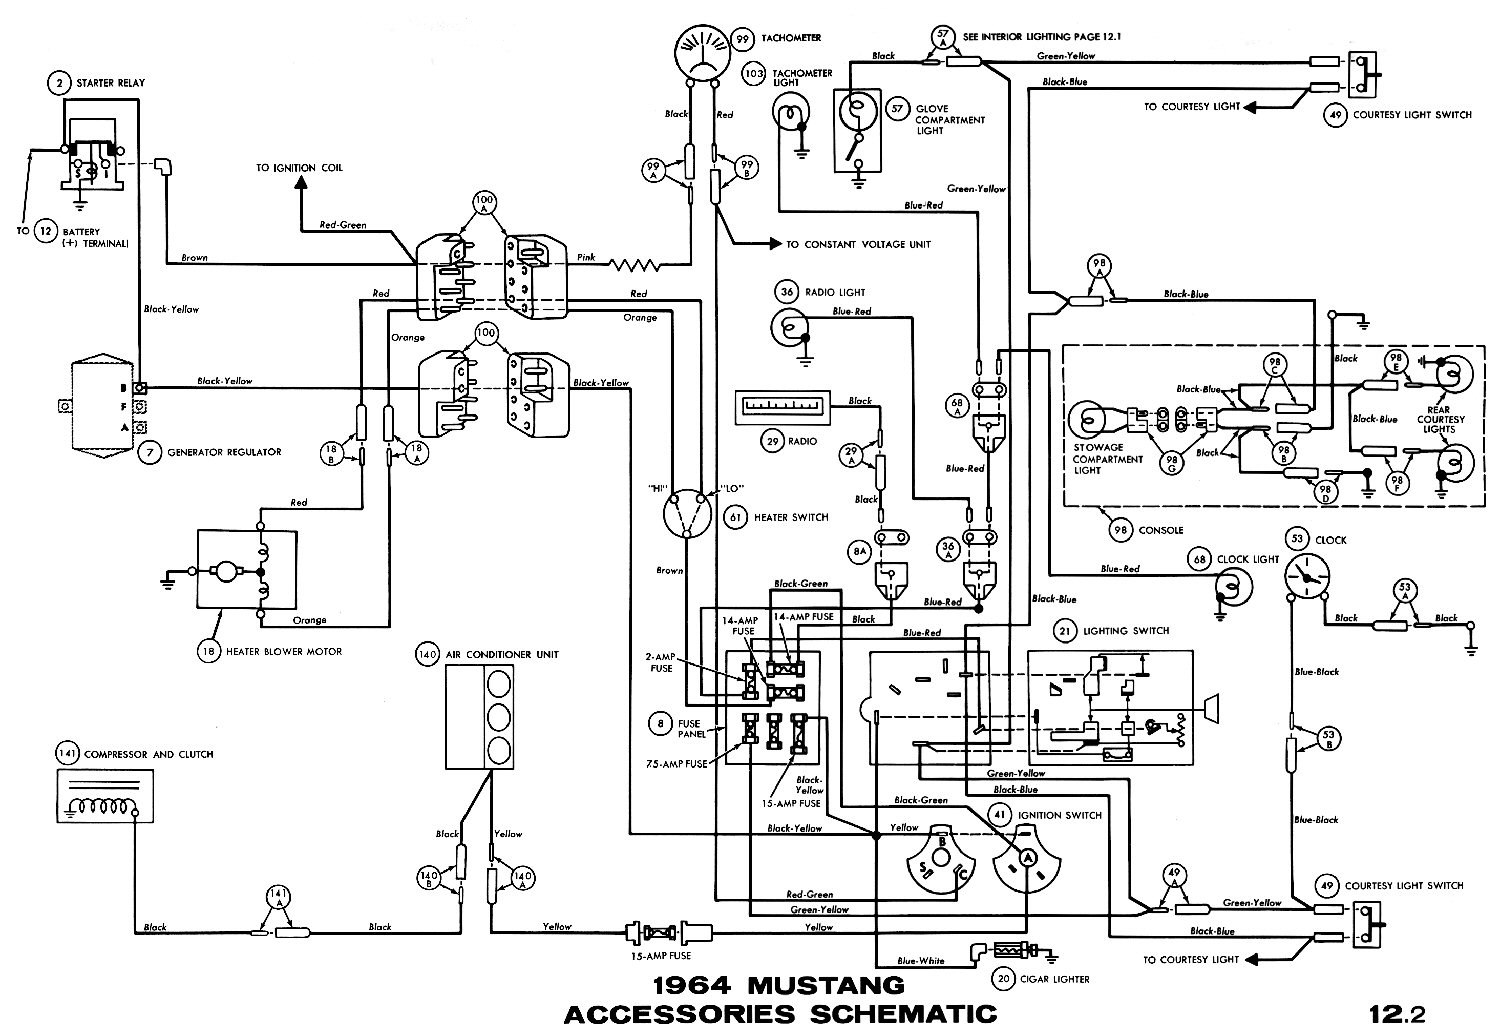 hight resolution of 1970 mustang turn signal wiring diagram simple wiring schema 1965 mustang dash wiring diagram 1969 mustang